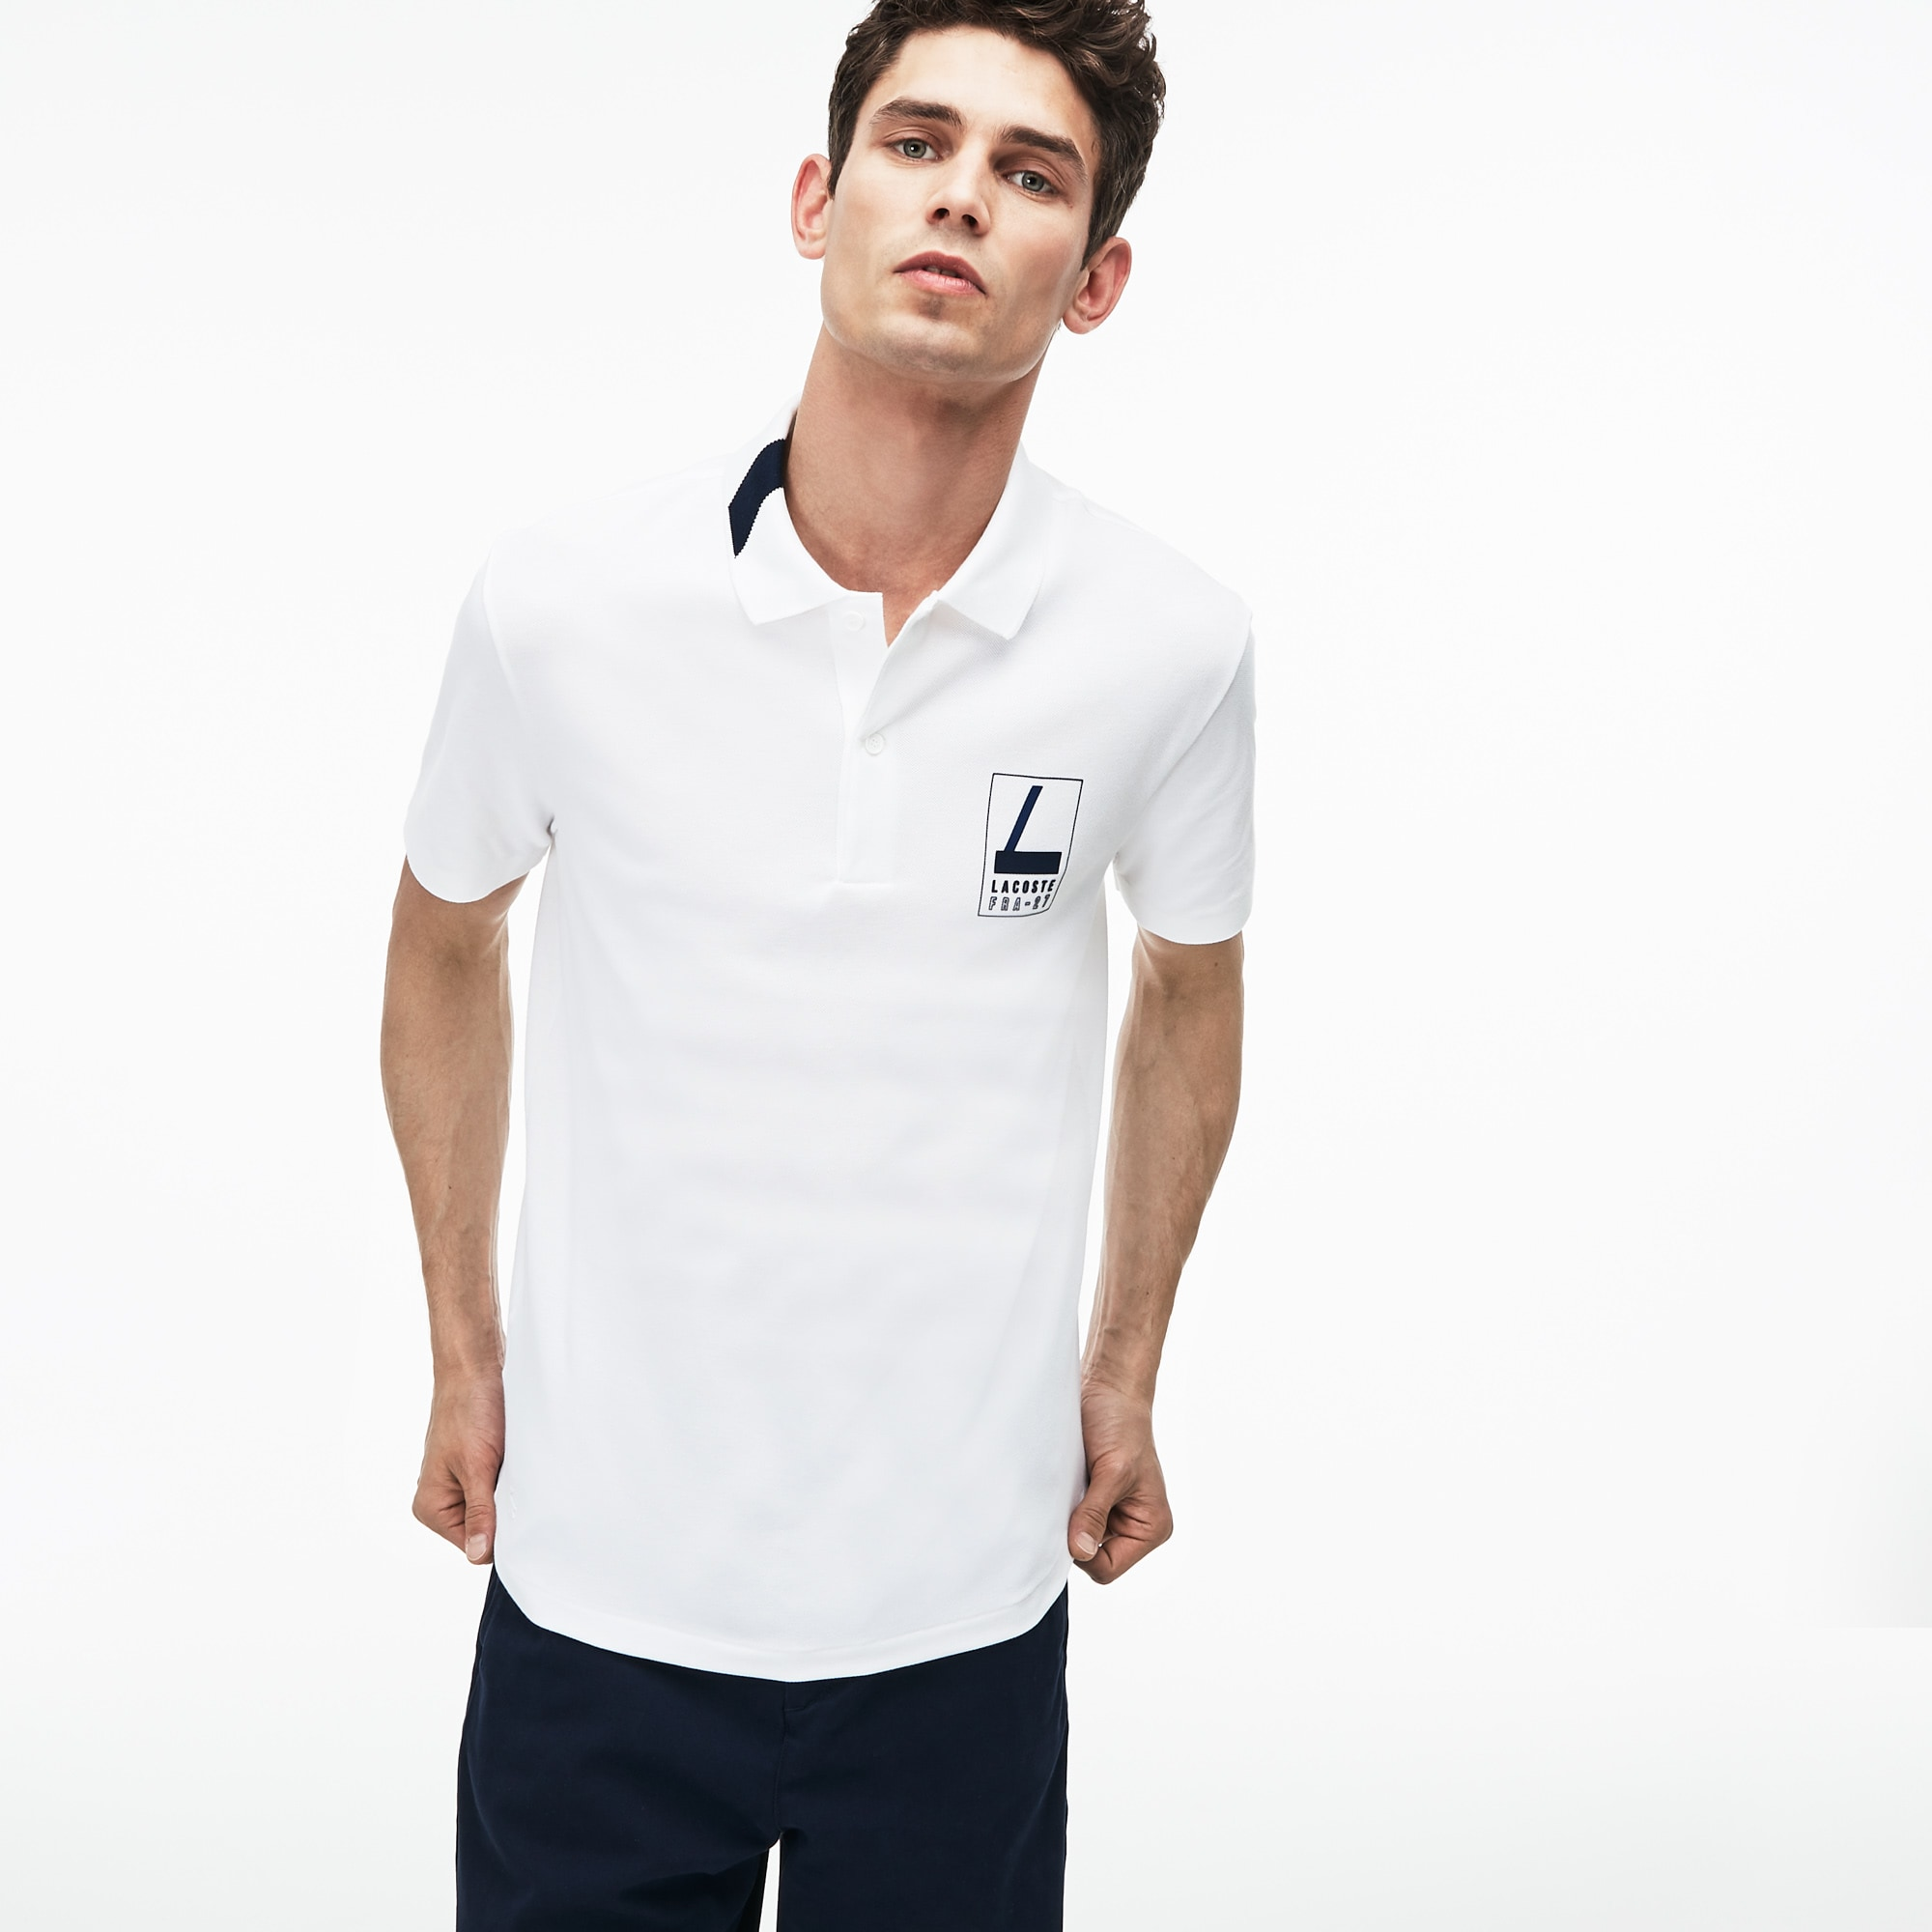 Men's Lacoste Slim Fit Lettering Stretch Mini Piqué Polo Shirt